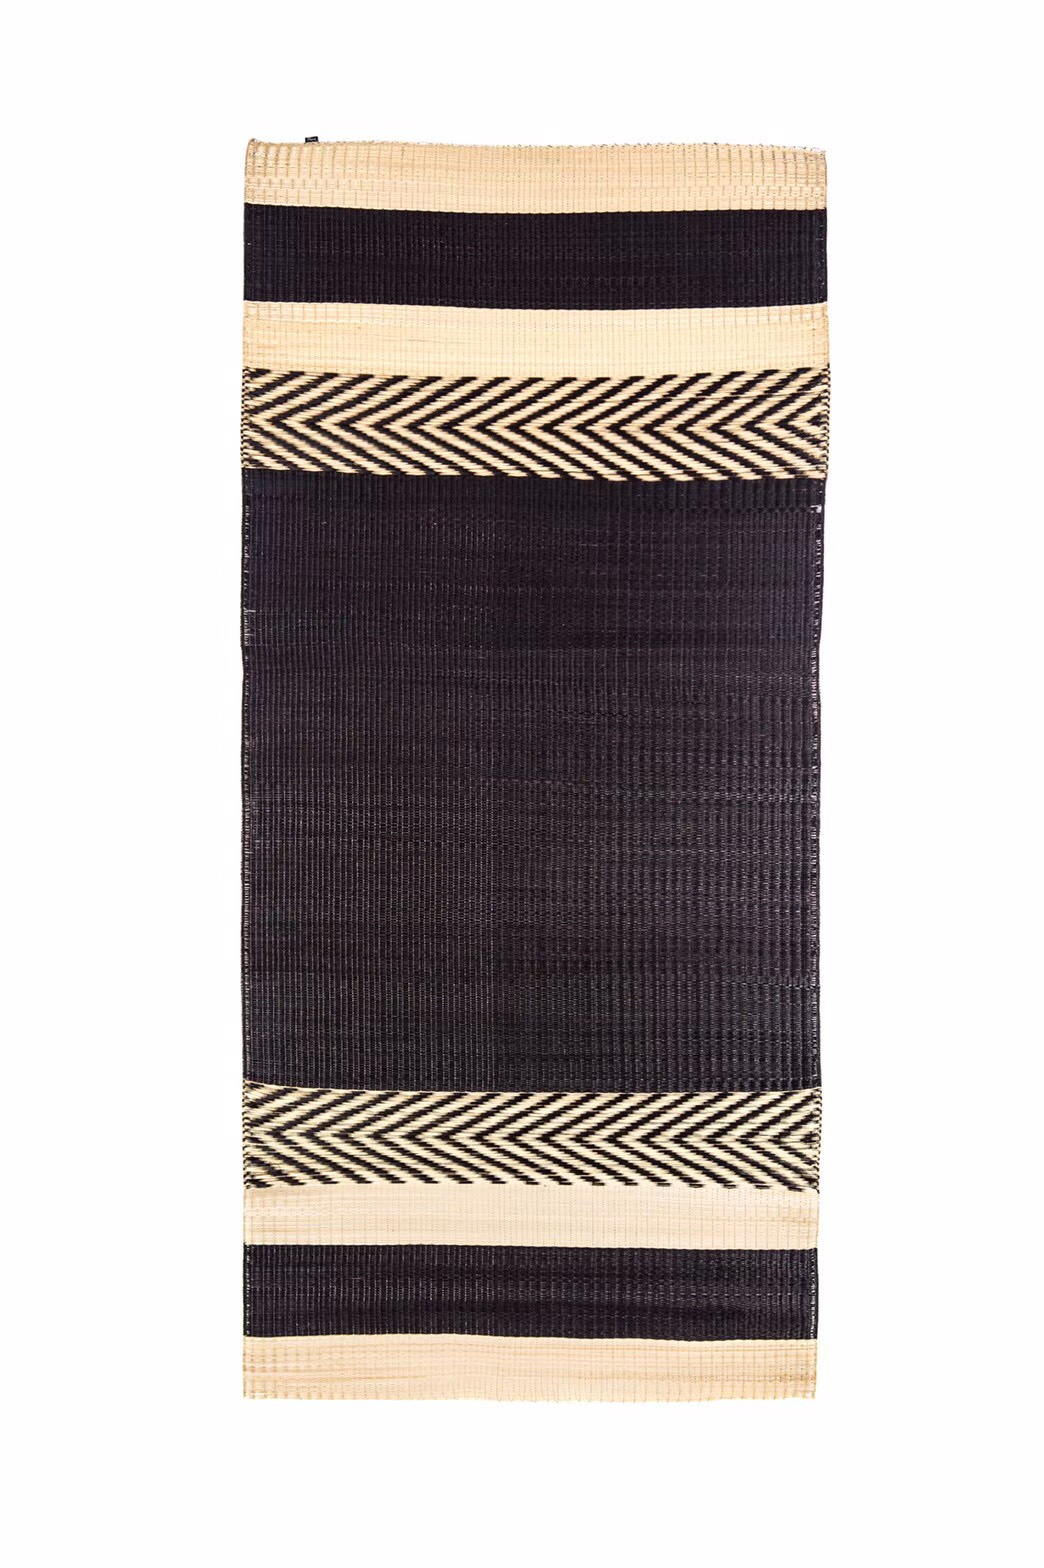 'Mini stripe' mat Black